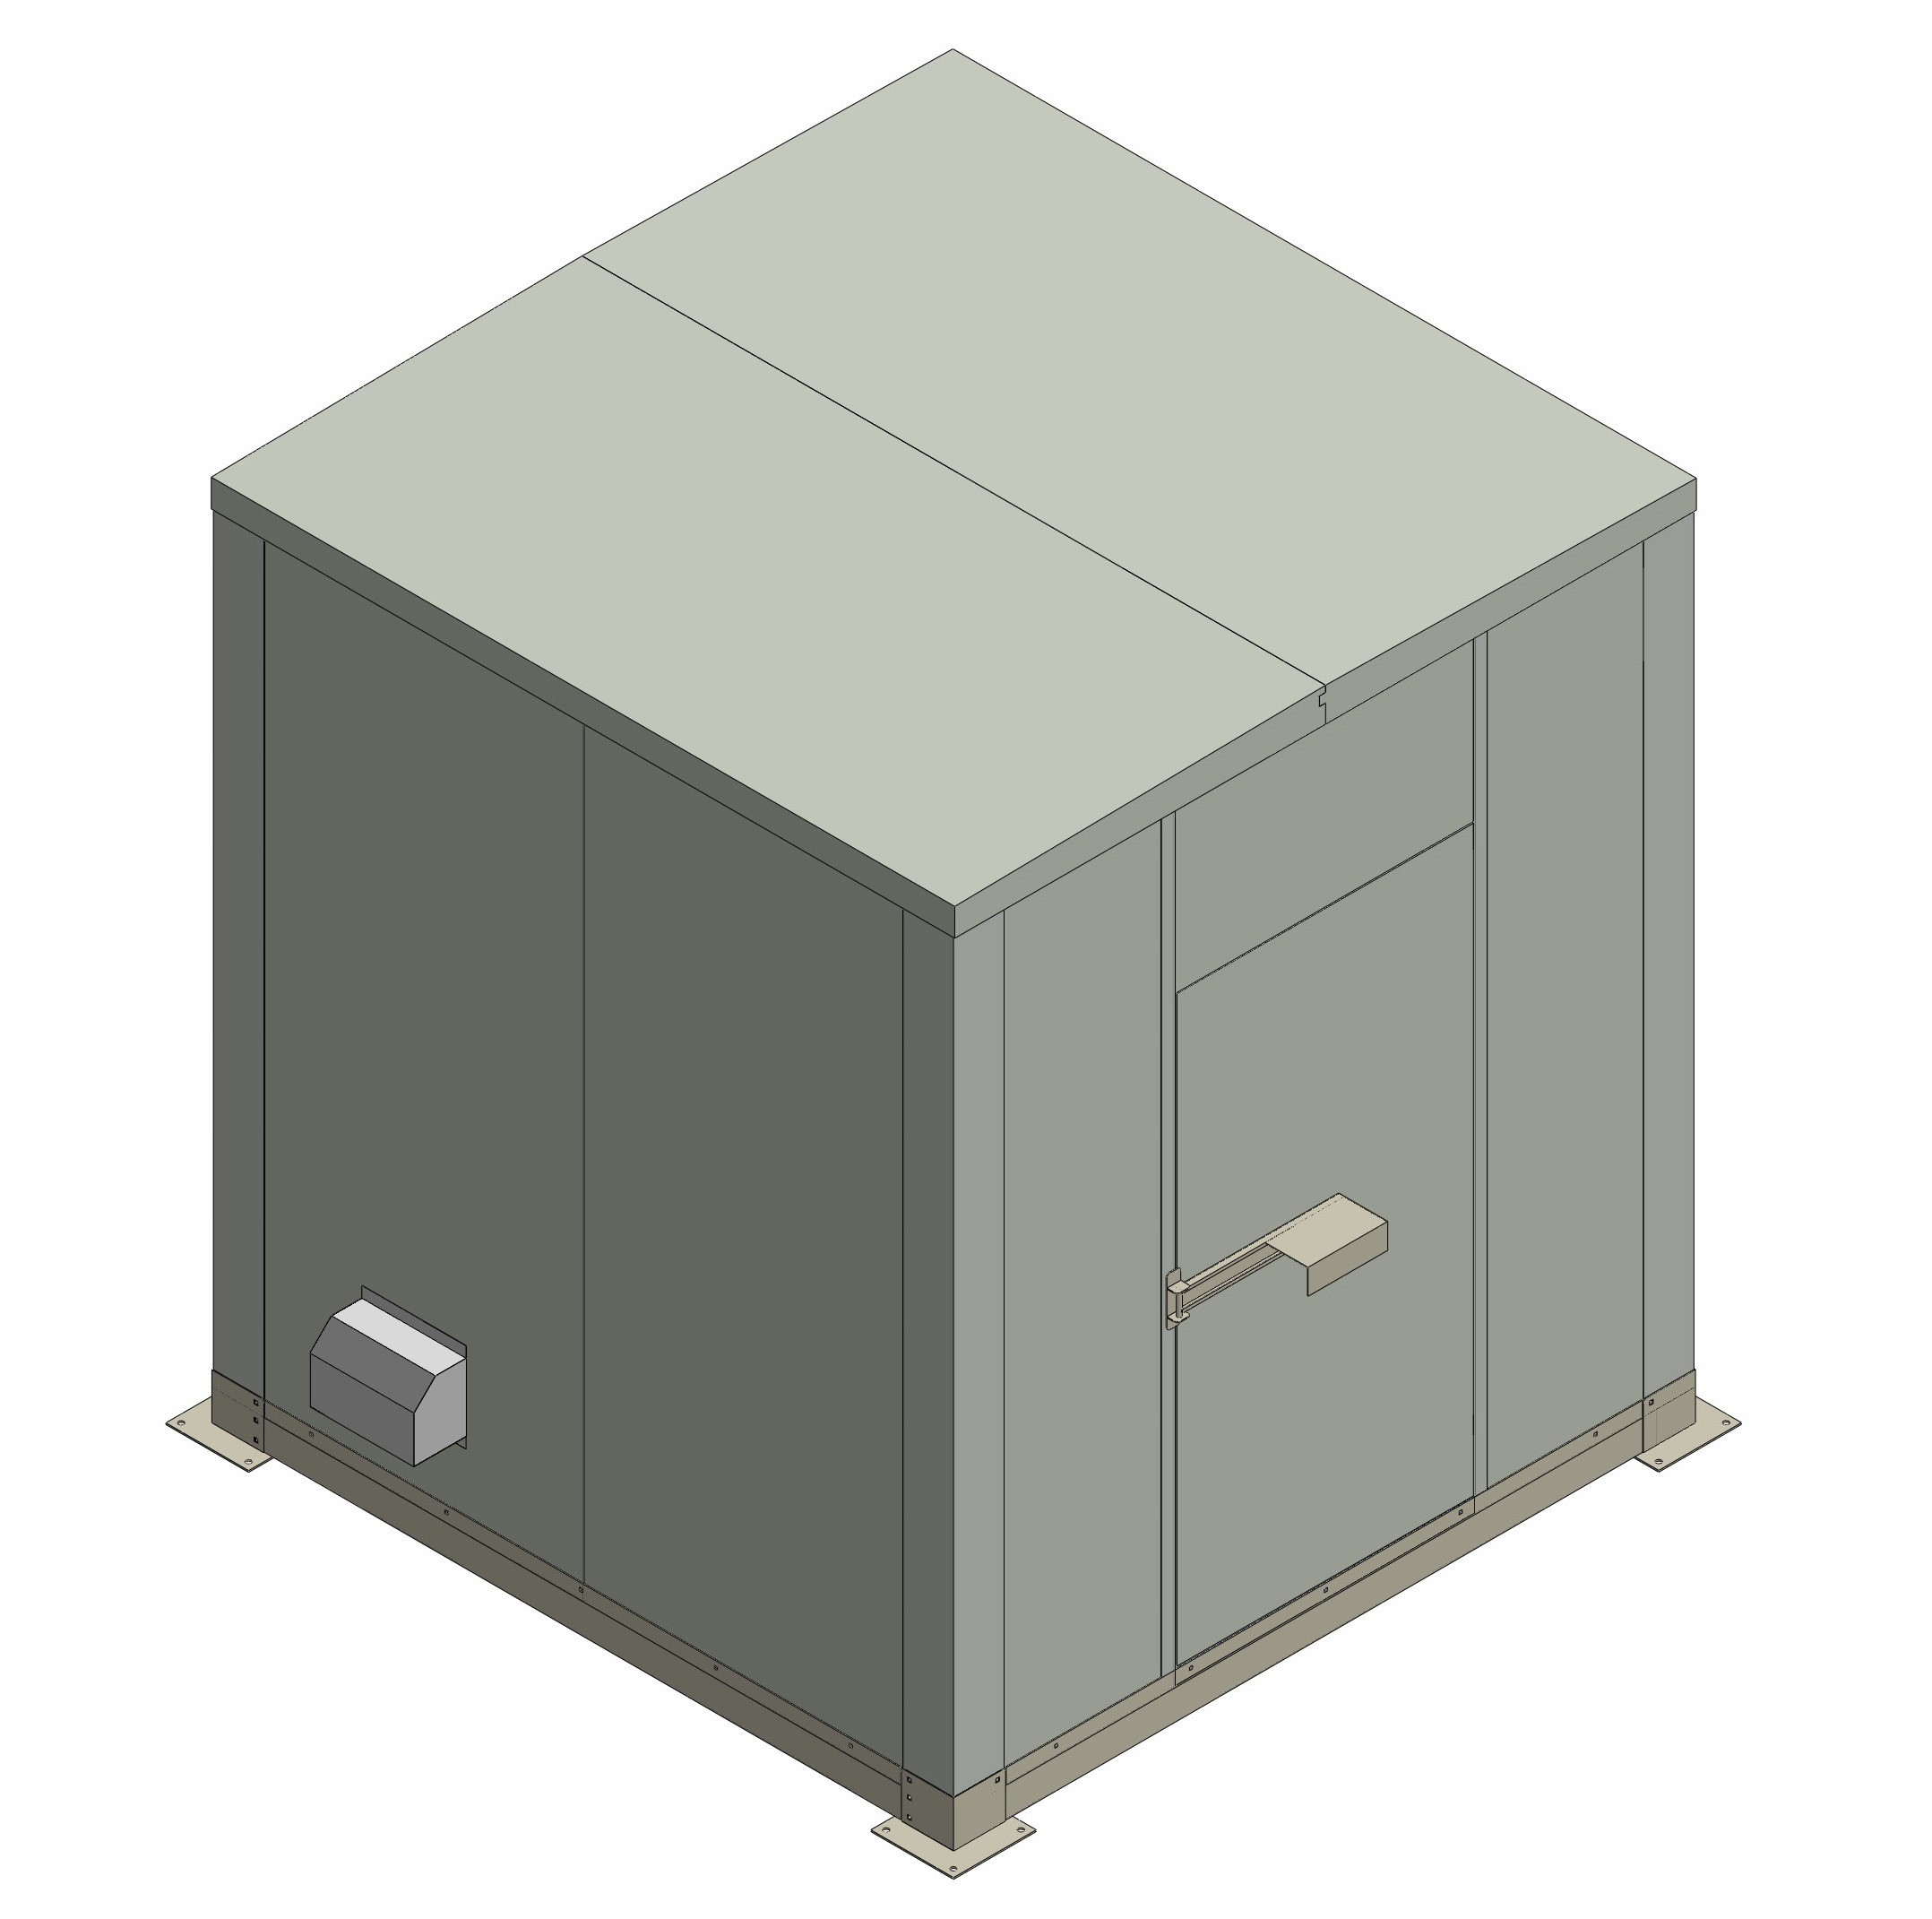 Shelter 3C-M2700W2640D1500T60